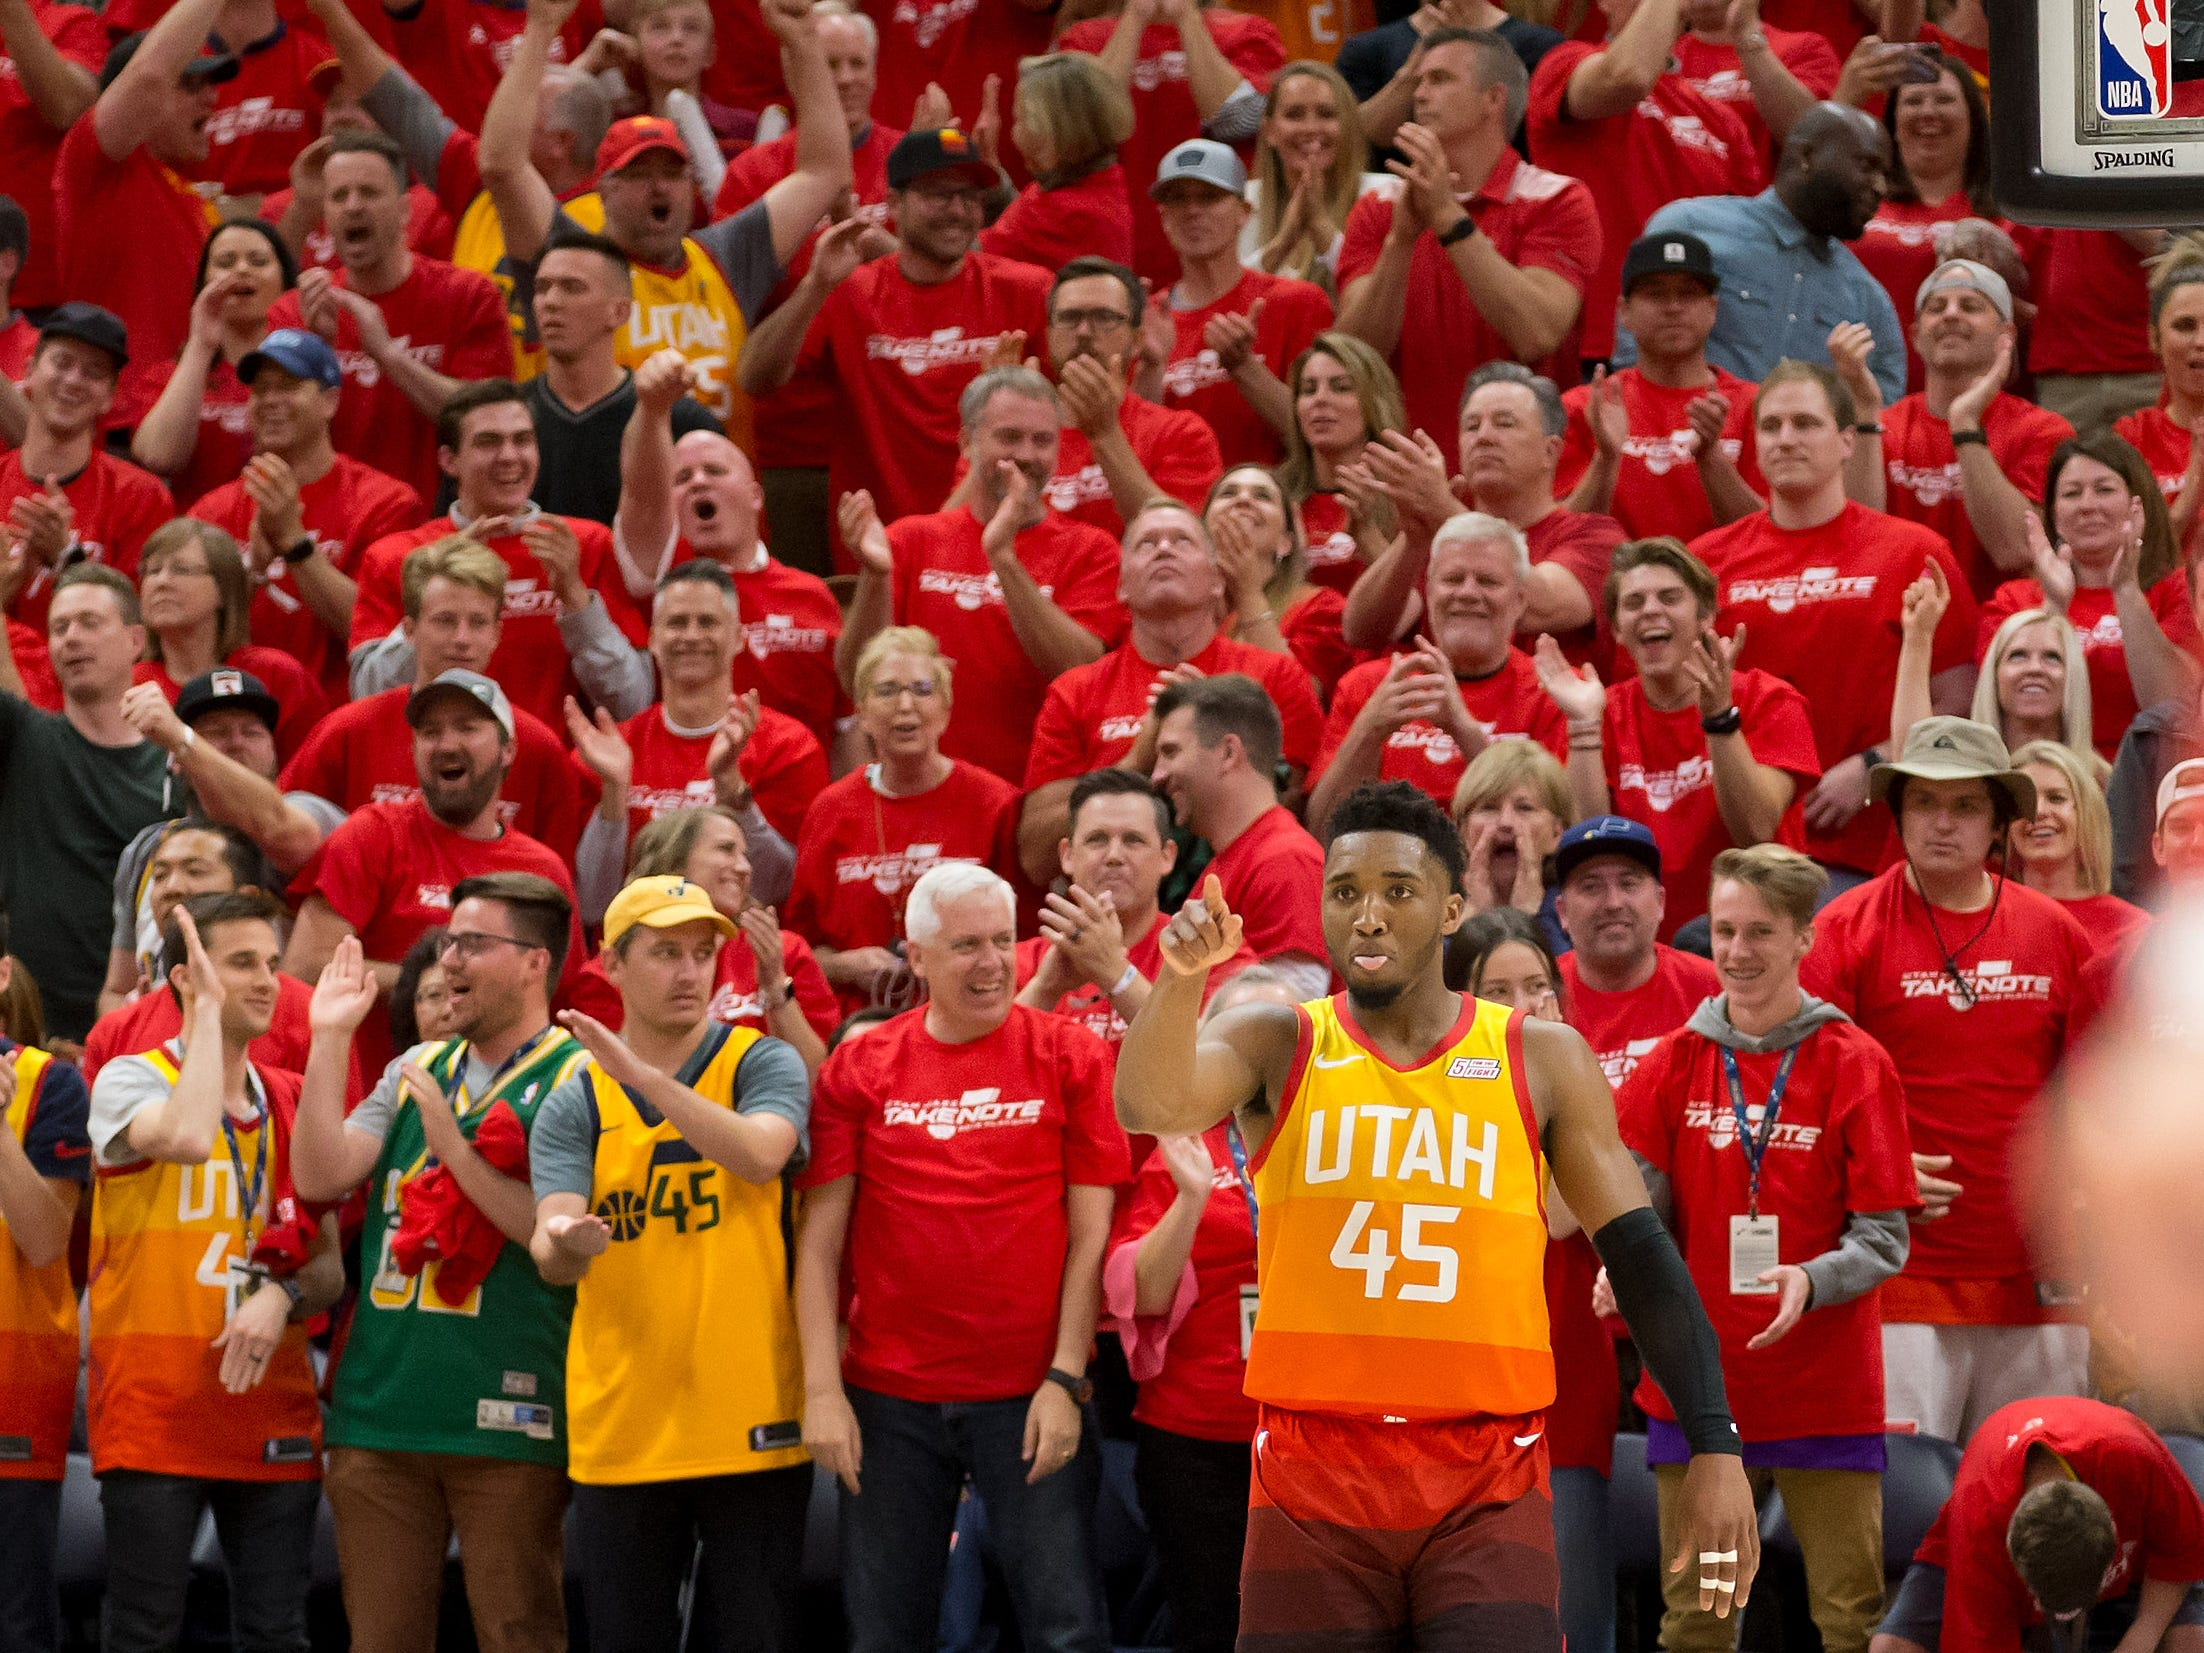 April 20: The Utah crowd gets behind Donovan Mitchell during Game 3 against the Rockets.